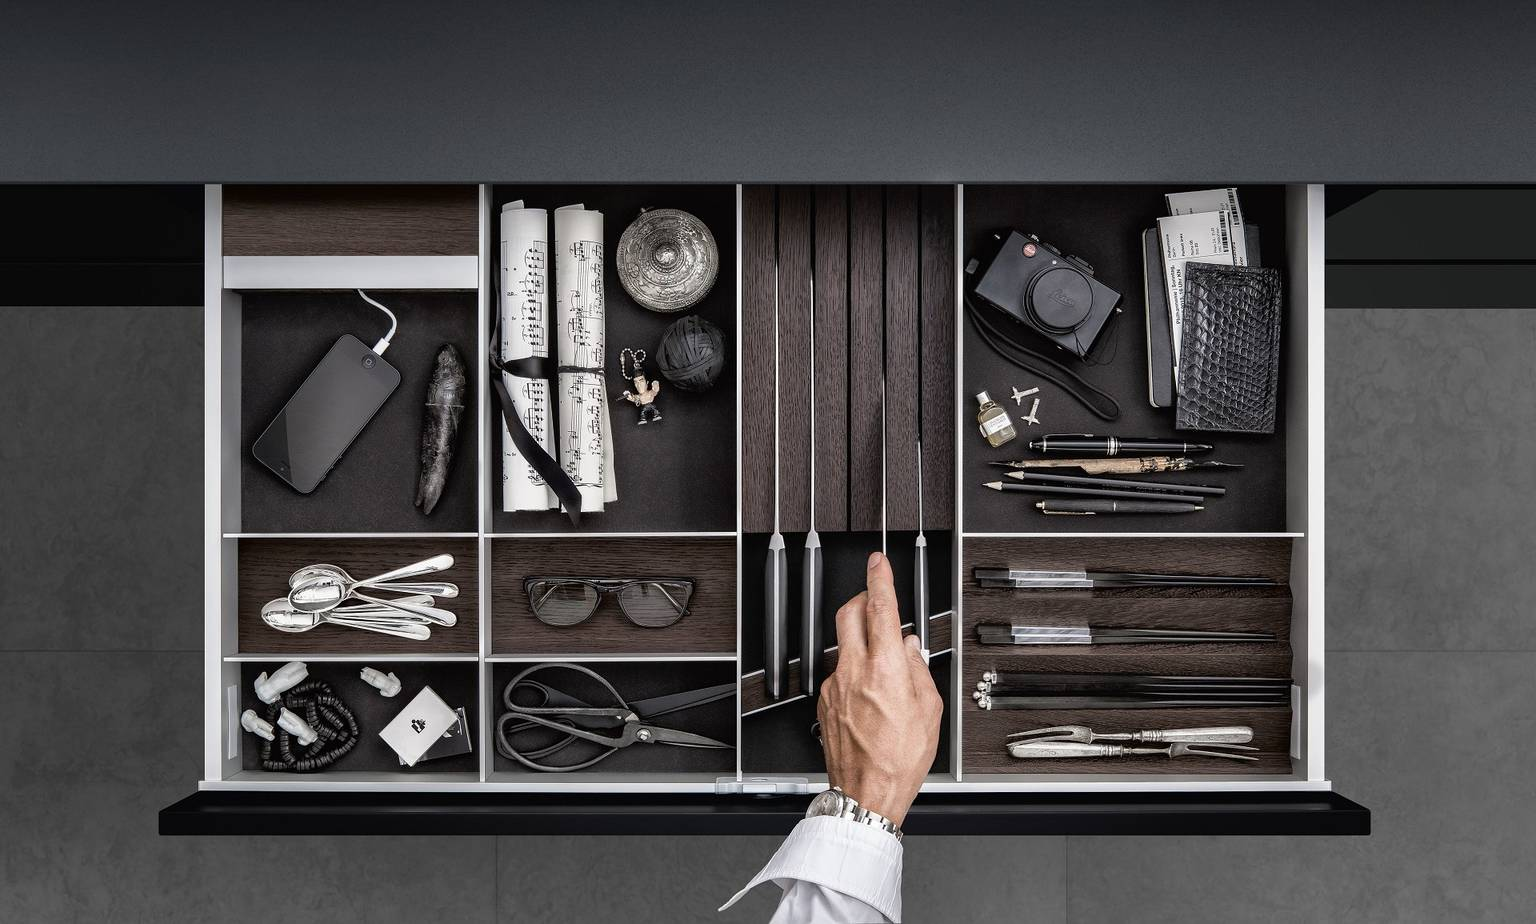 SieMatic aluminum kitchen interior accessories in dark smoked chestnut provide a place for iPhone, cutlery and knives.